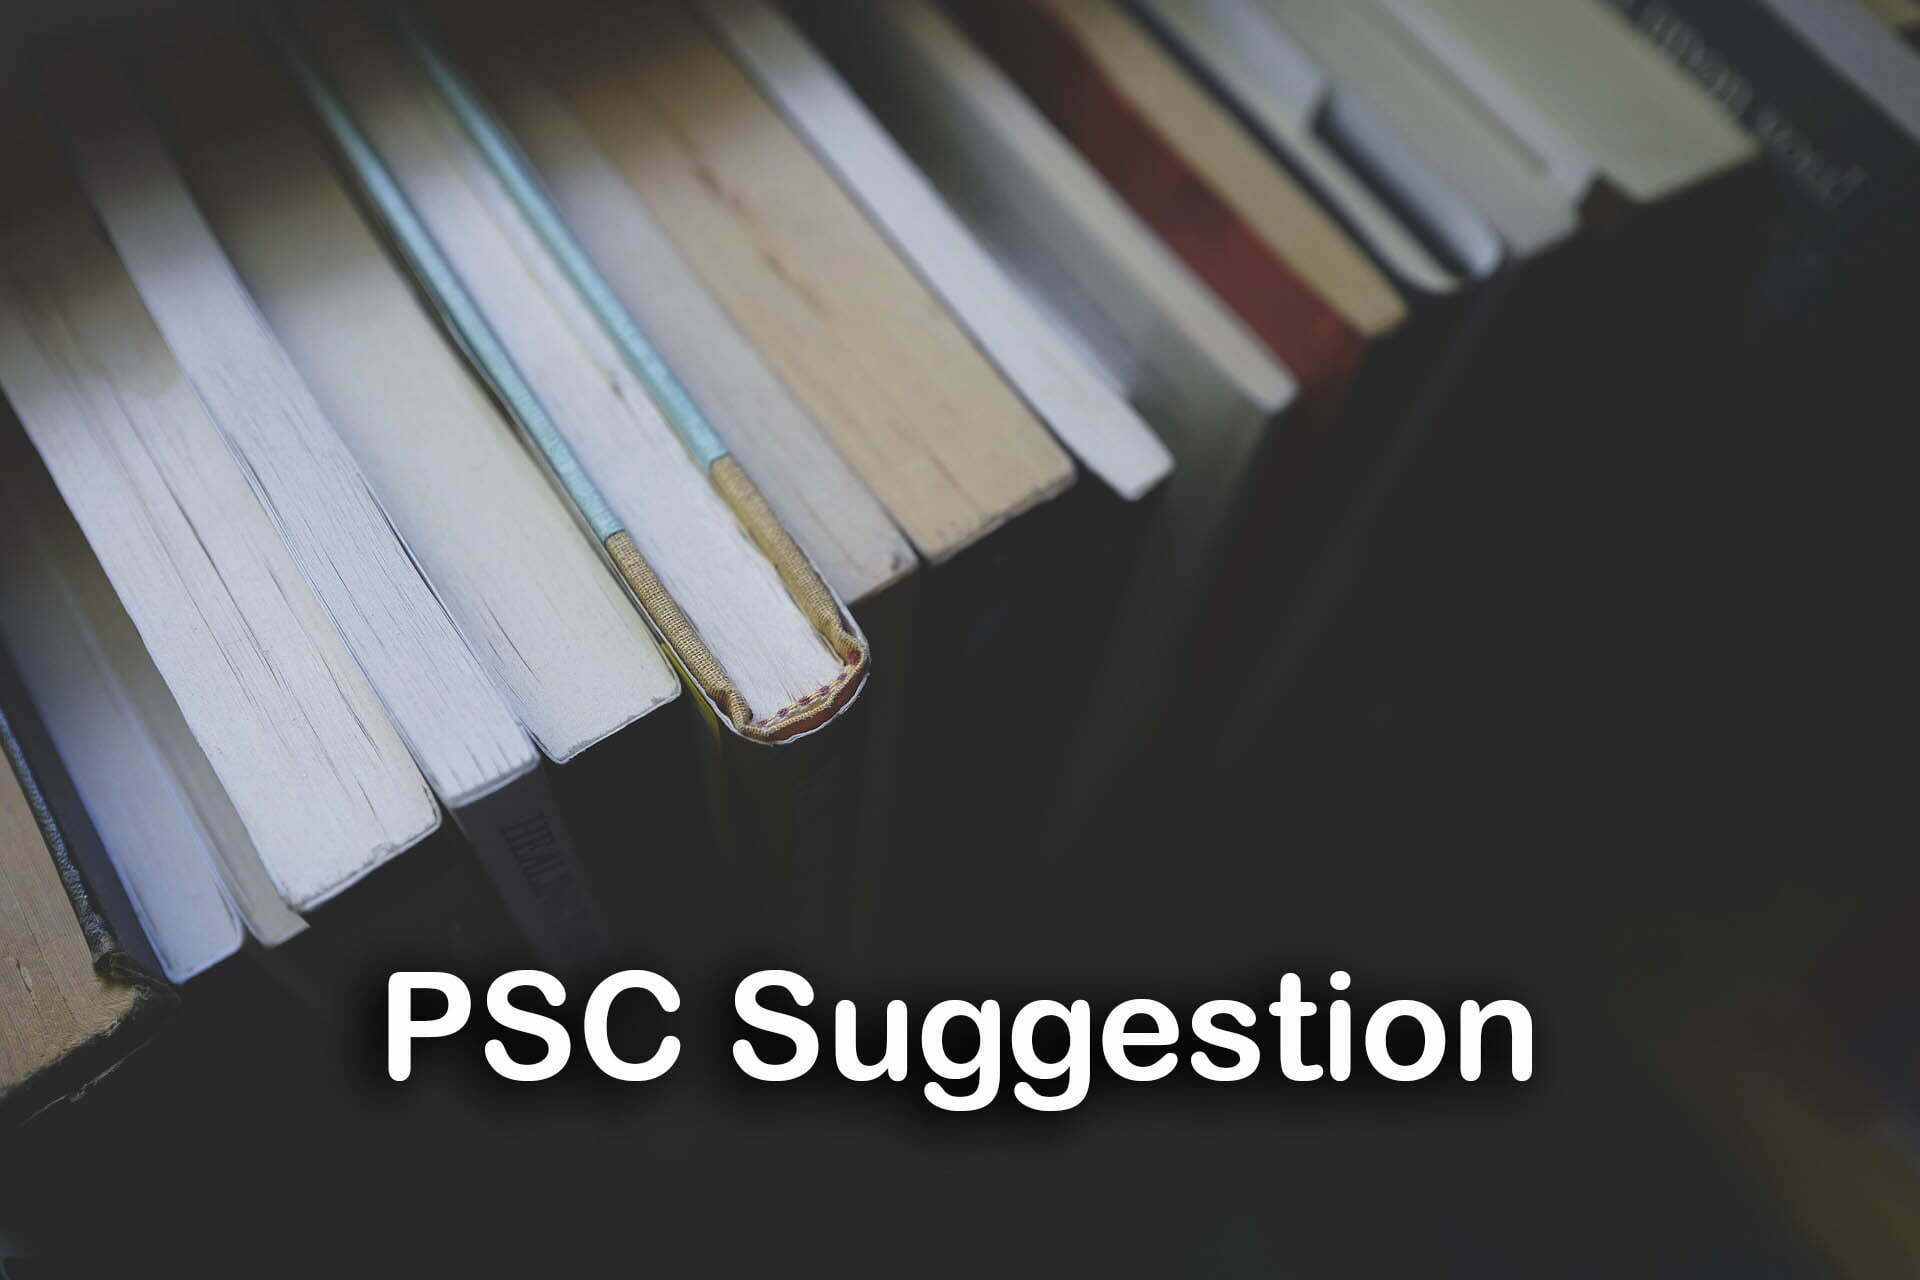 PSC Suggestion